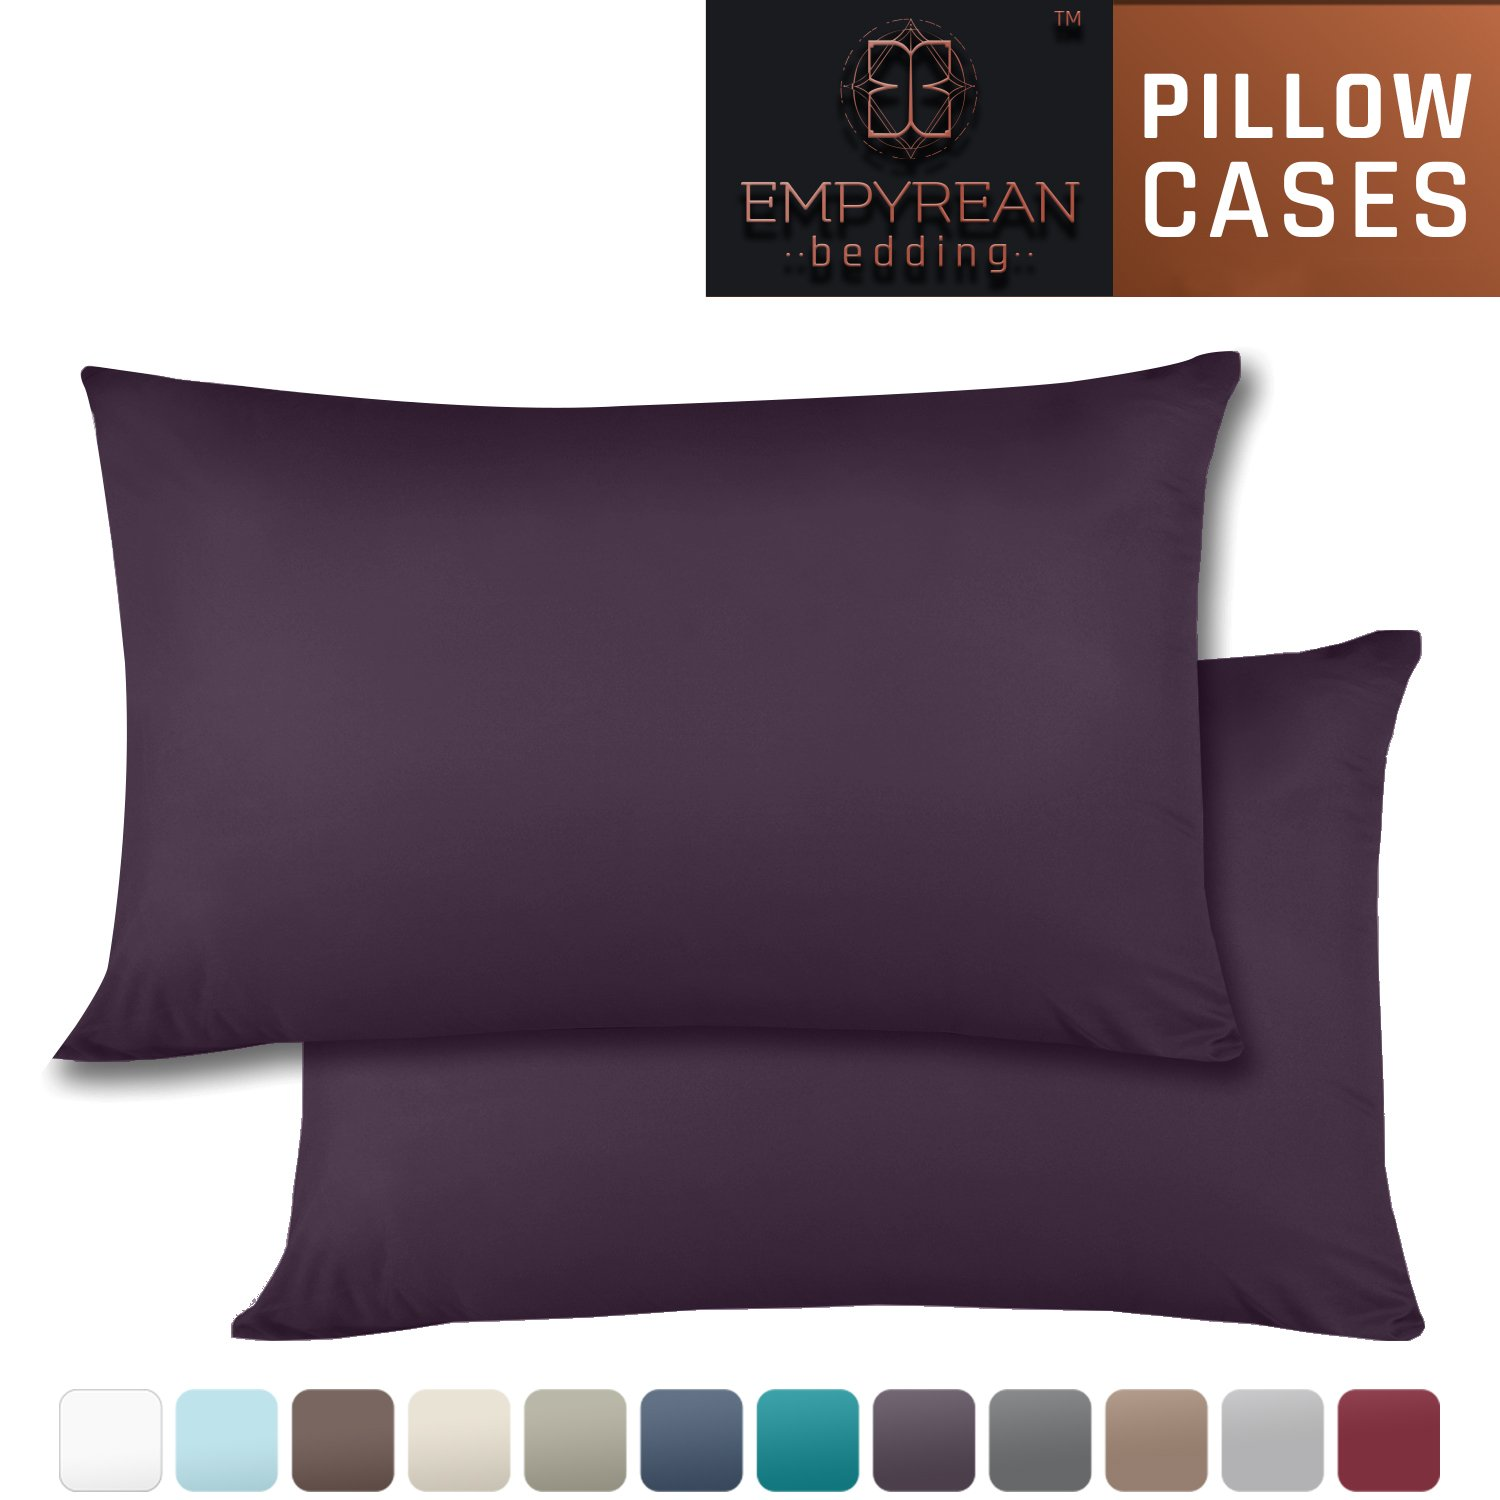 Set of 2 Premium Standard-Size Pillowcases - Superior-Quality Microfiber Linen, Hypoallergenic & Breathable Design, Soft & Comfortable Hotel Luxury - Purple Eggplant